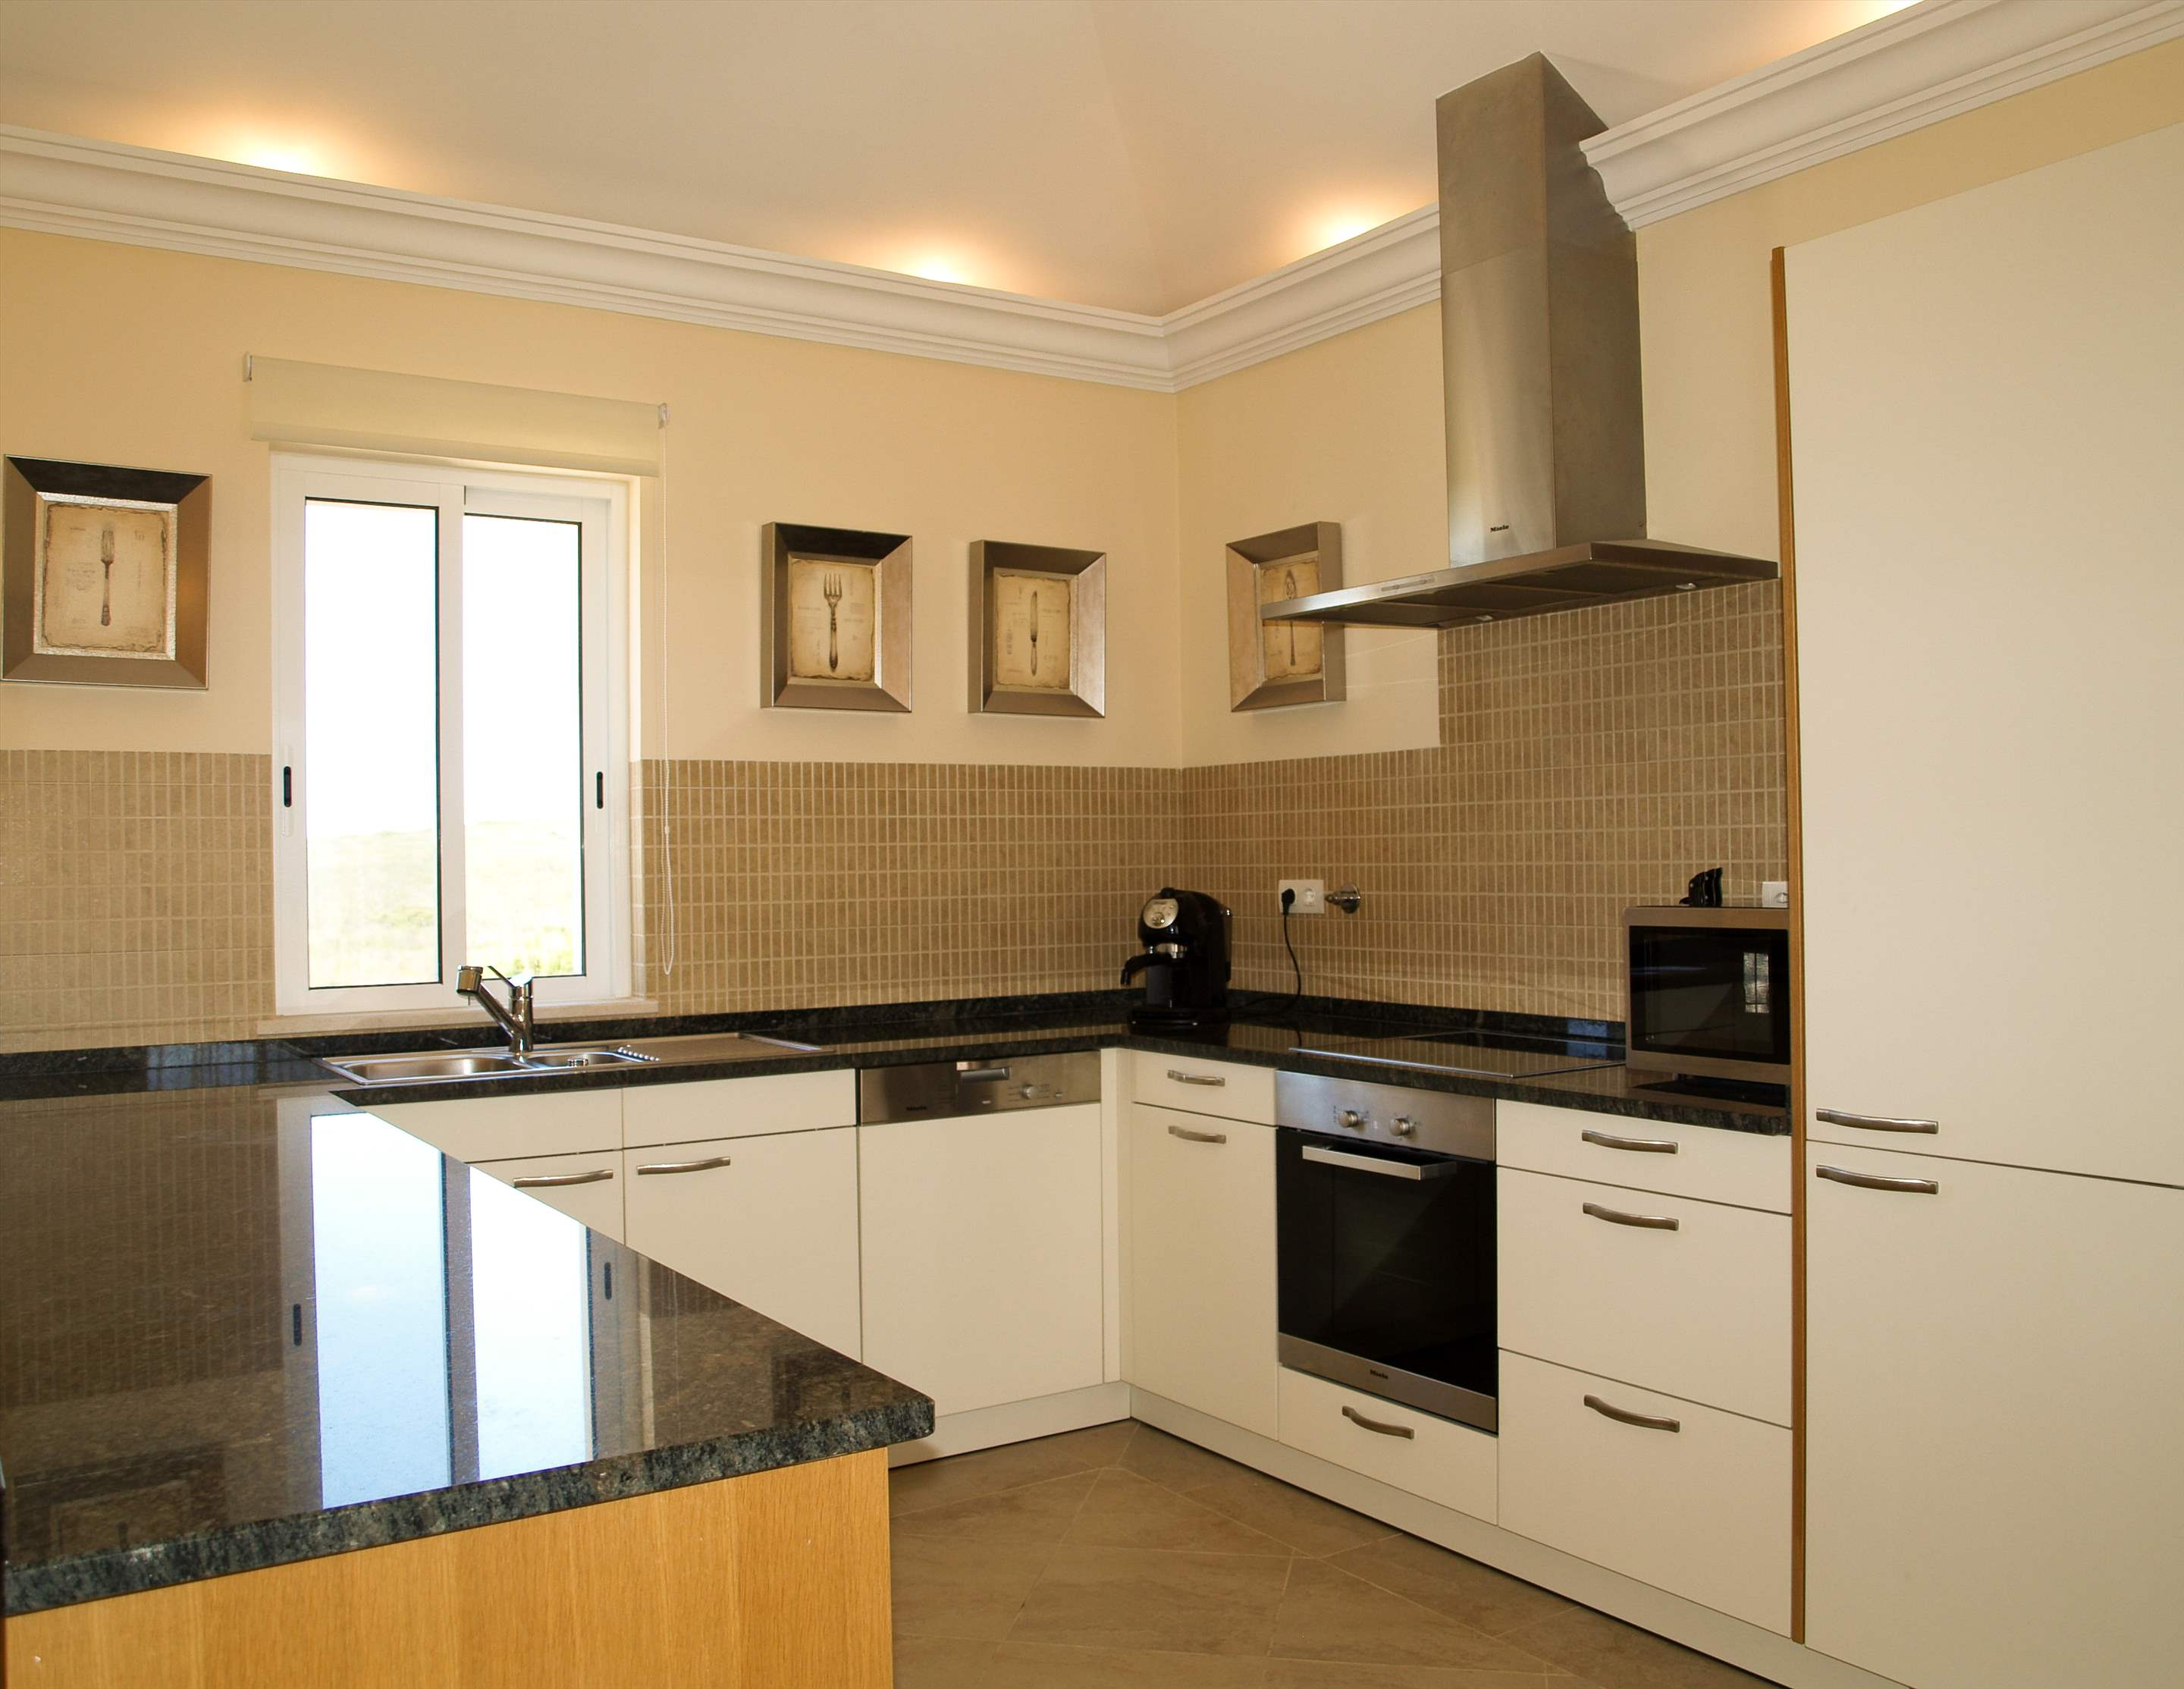 Martinhal Vilas Mimosa Two Bedroom, 2 bedroom villa in Martinhal Sagres, Algarve Photo #5